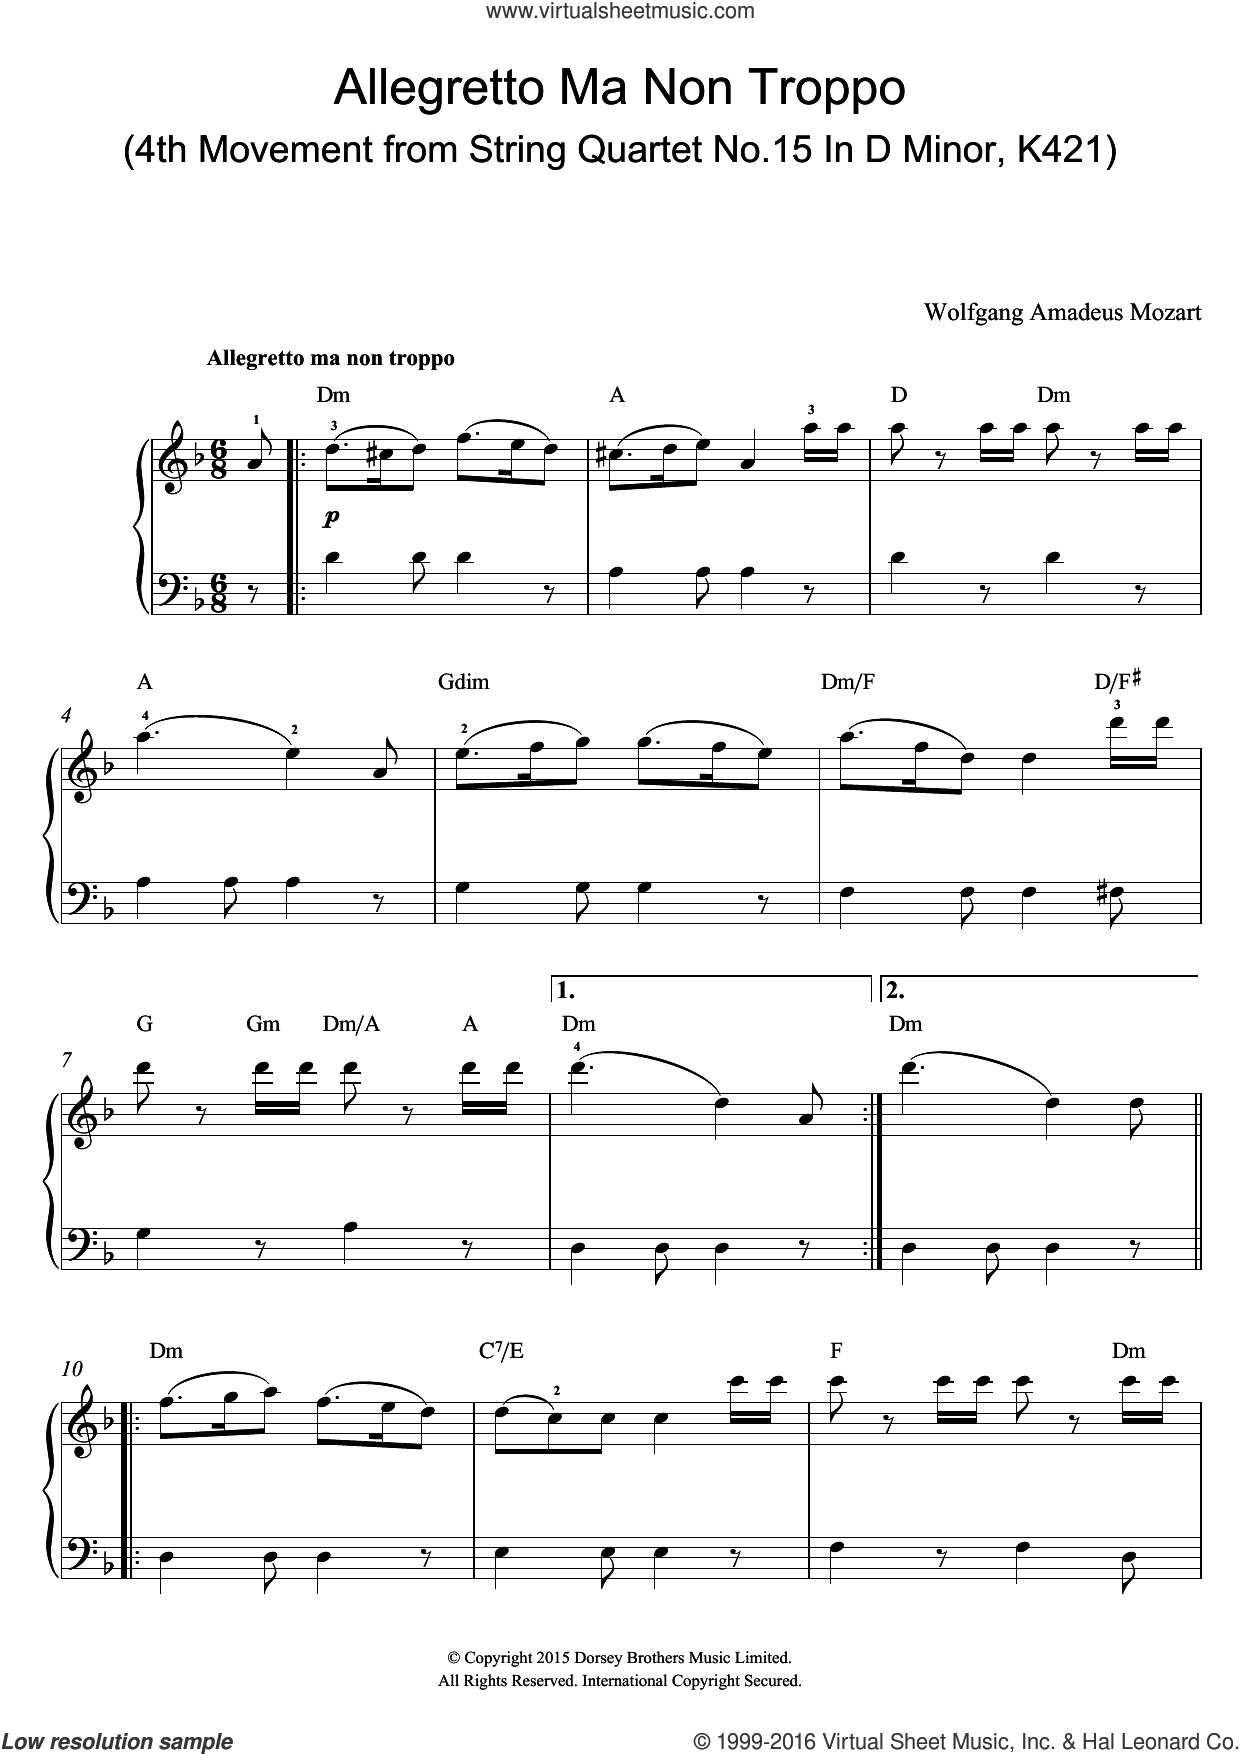 Allegretto Ma Non Troppo (4th Movement from String Quartet No.15 In D Minor, K421) sheet music for voice, piano or guitar by Wolfgang Amadeus Mozart. Score Image Preview.